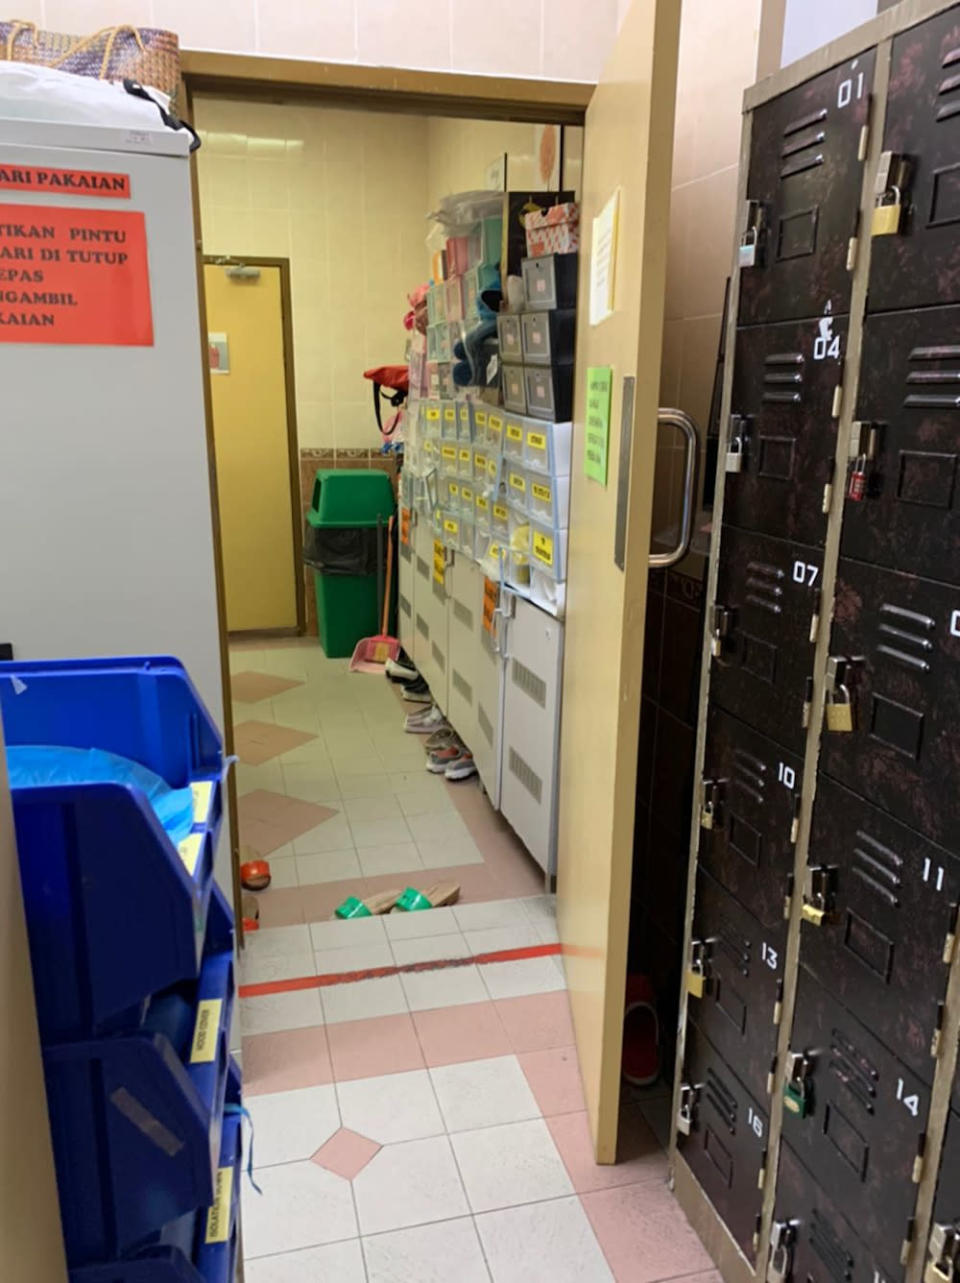 The small area for the surgical staff in the smaller operation theatre in Penang General Hospital that handles surgeries for non-Covid patients.